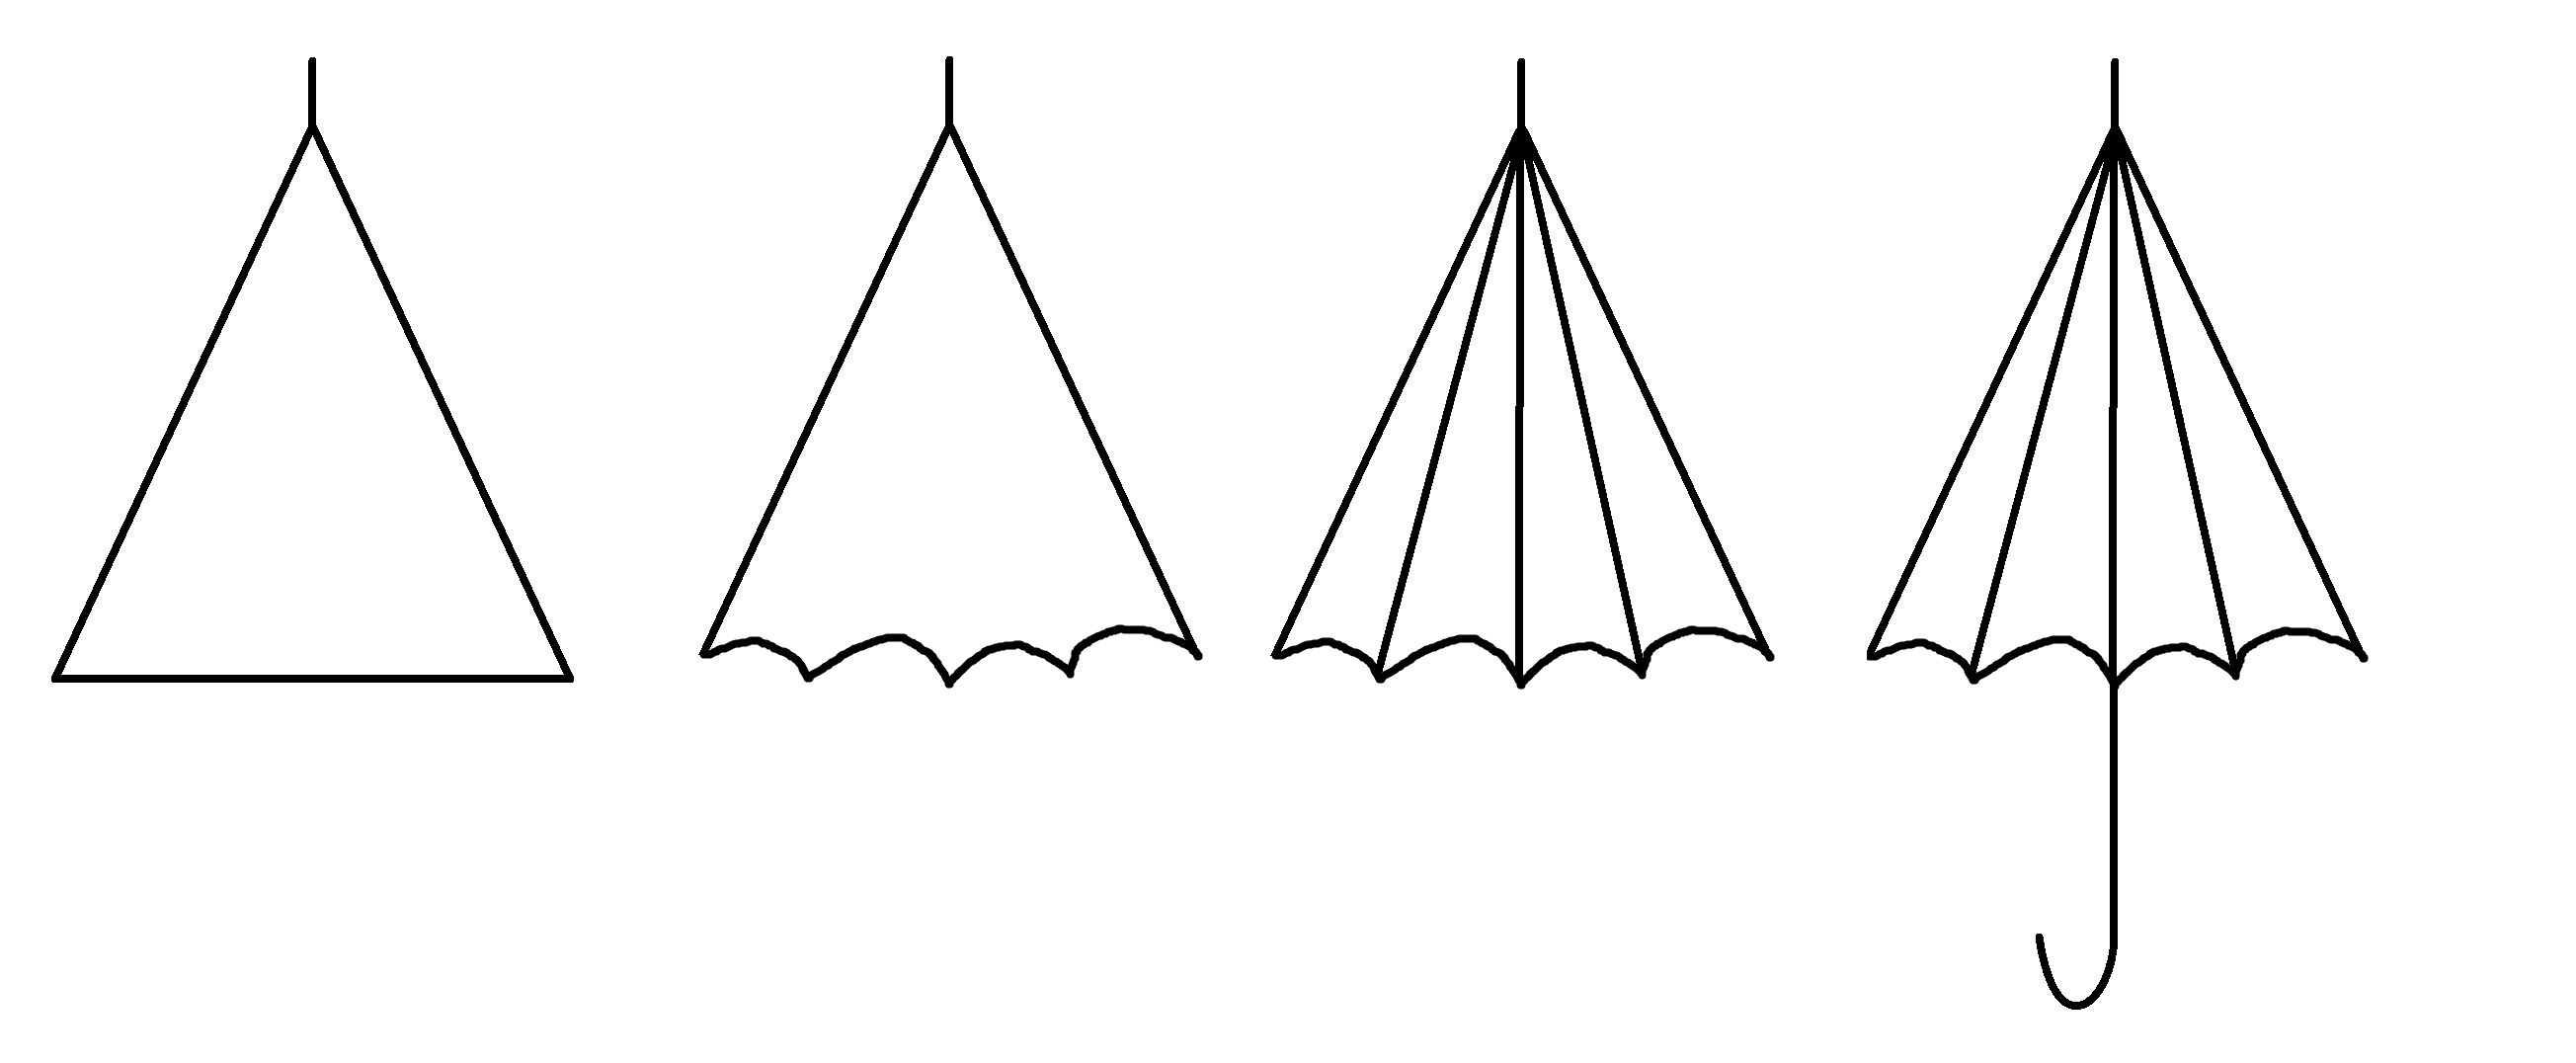 how to draw umbrella step by step vector drawing of a different umbrellas umbrella art step step how draw by umbrella to